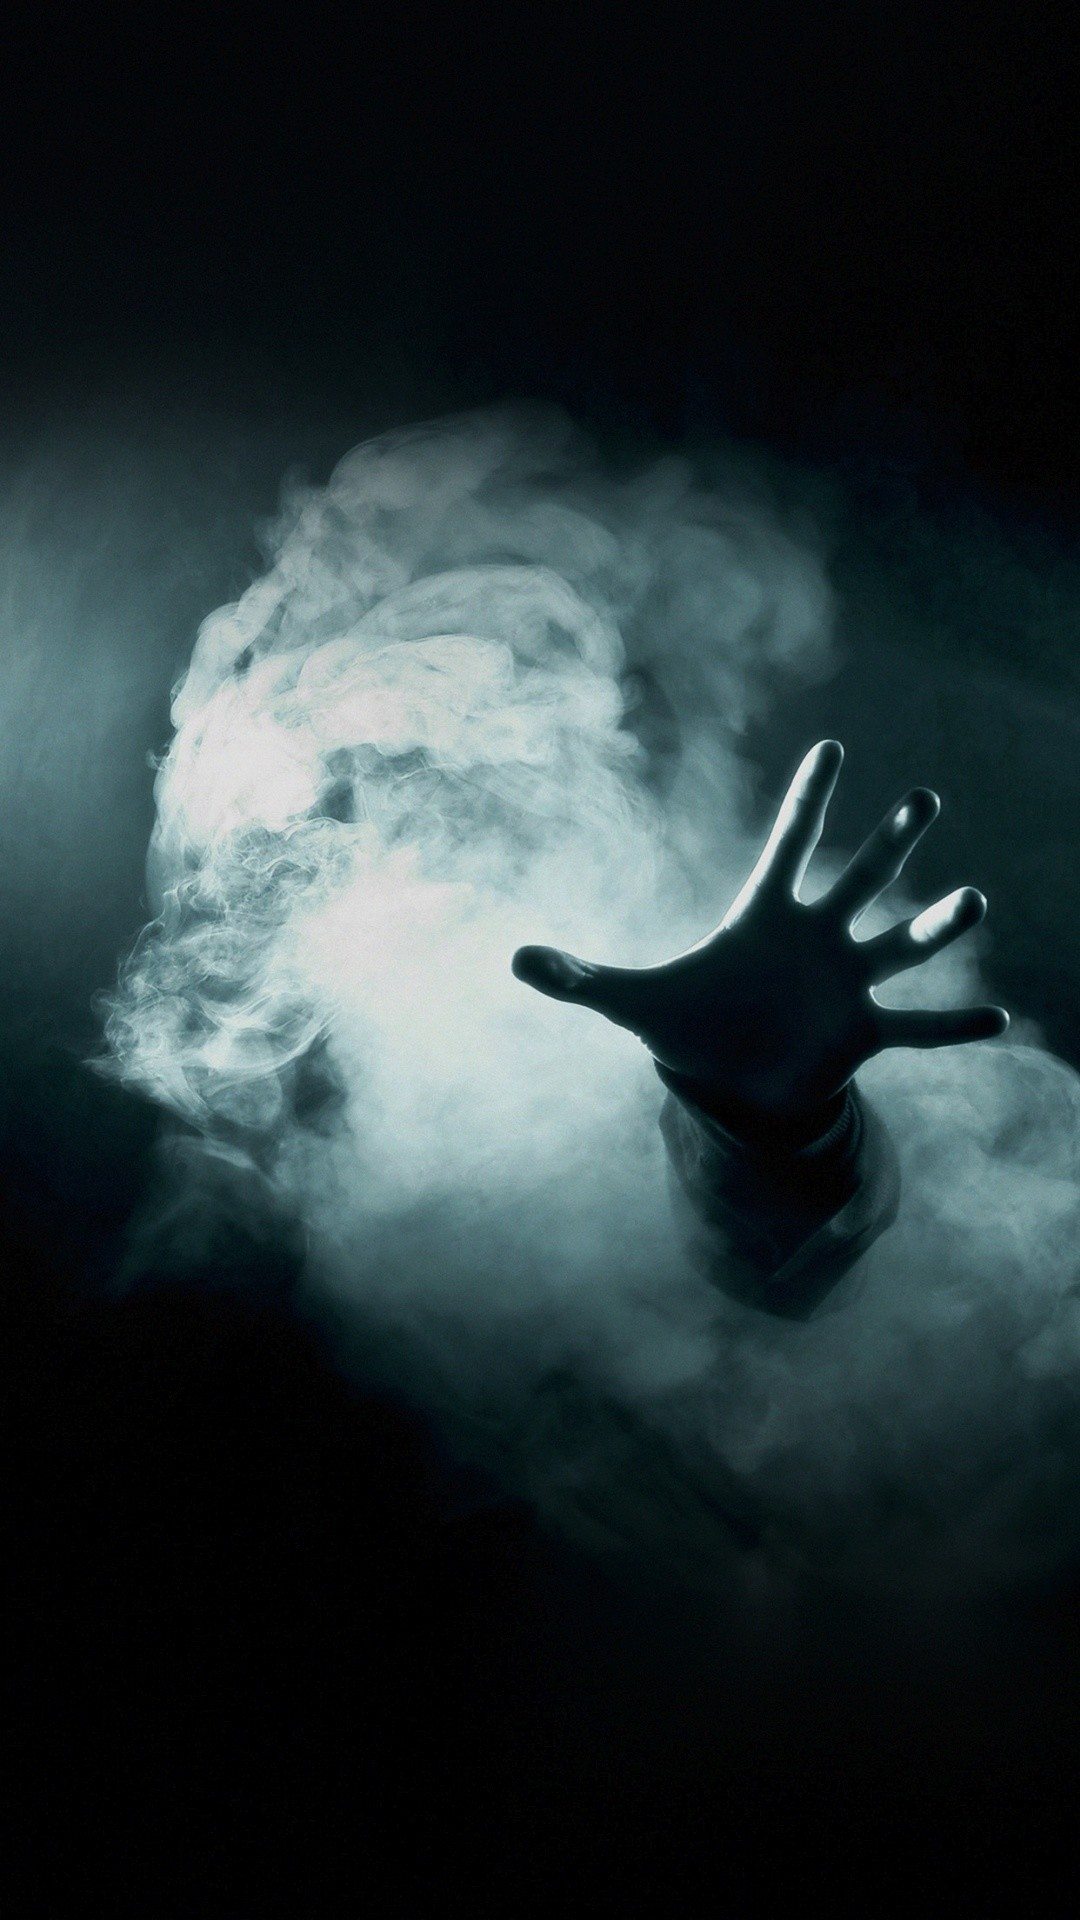 1080x1920 Hand Reaching Out From Smoke Horror IPhone 6 HD Wallpaper